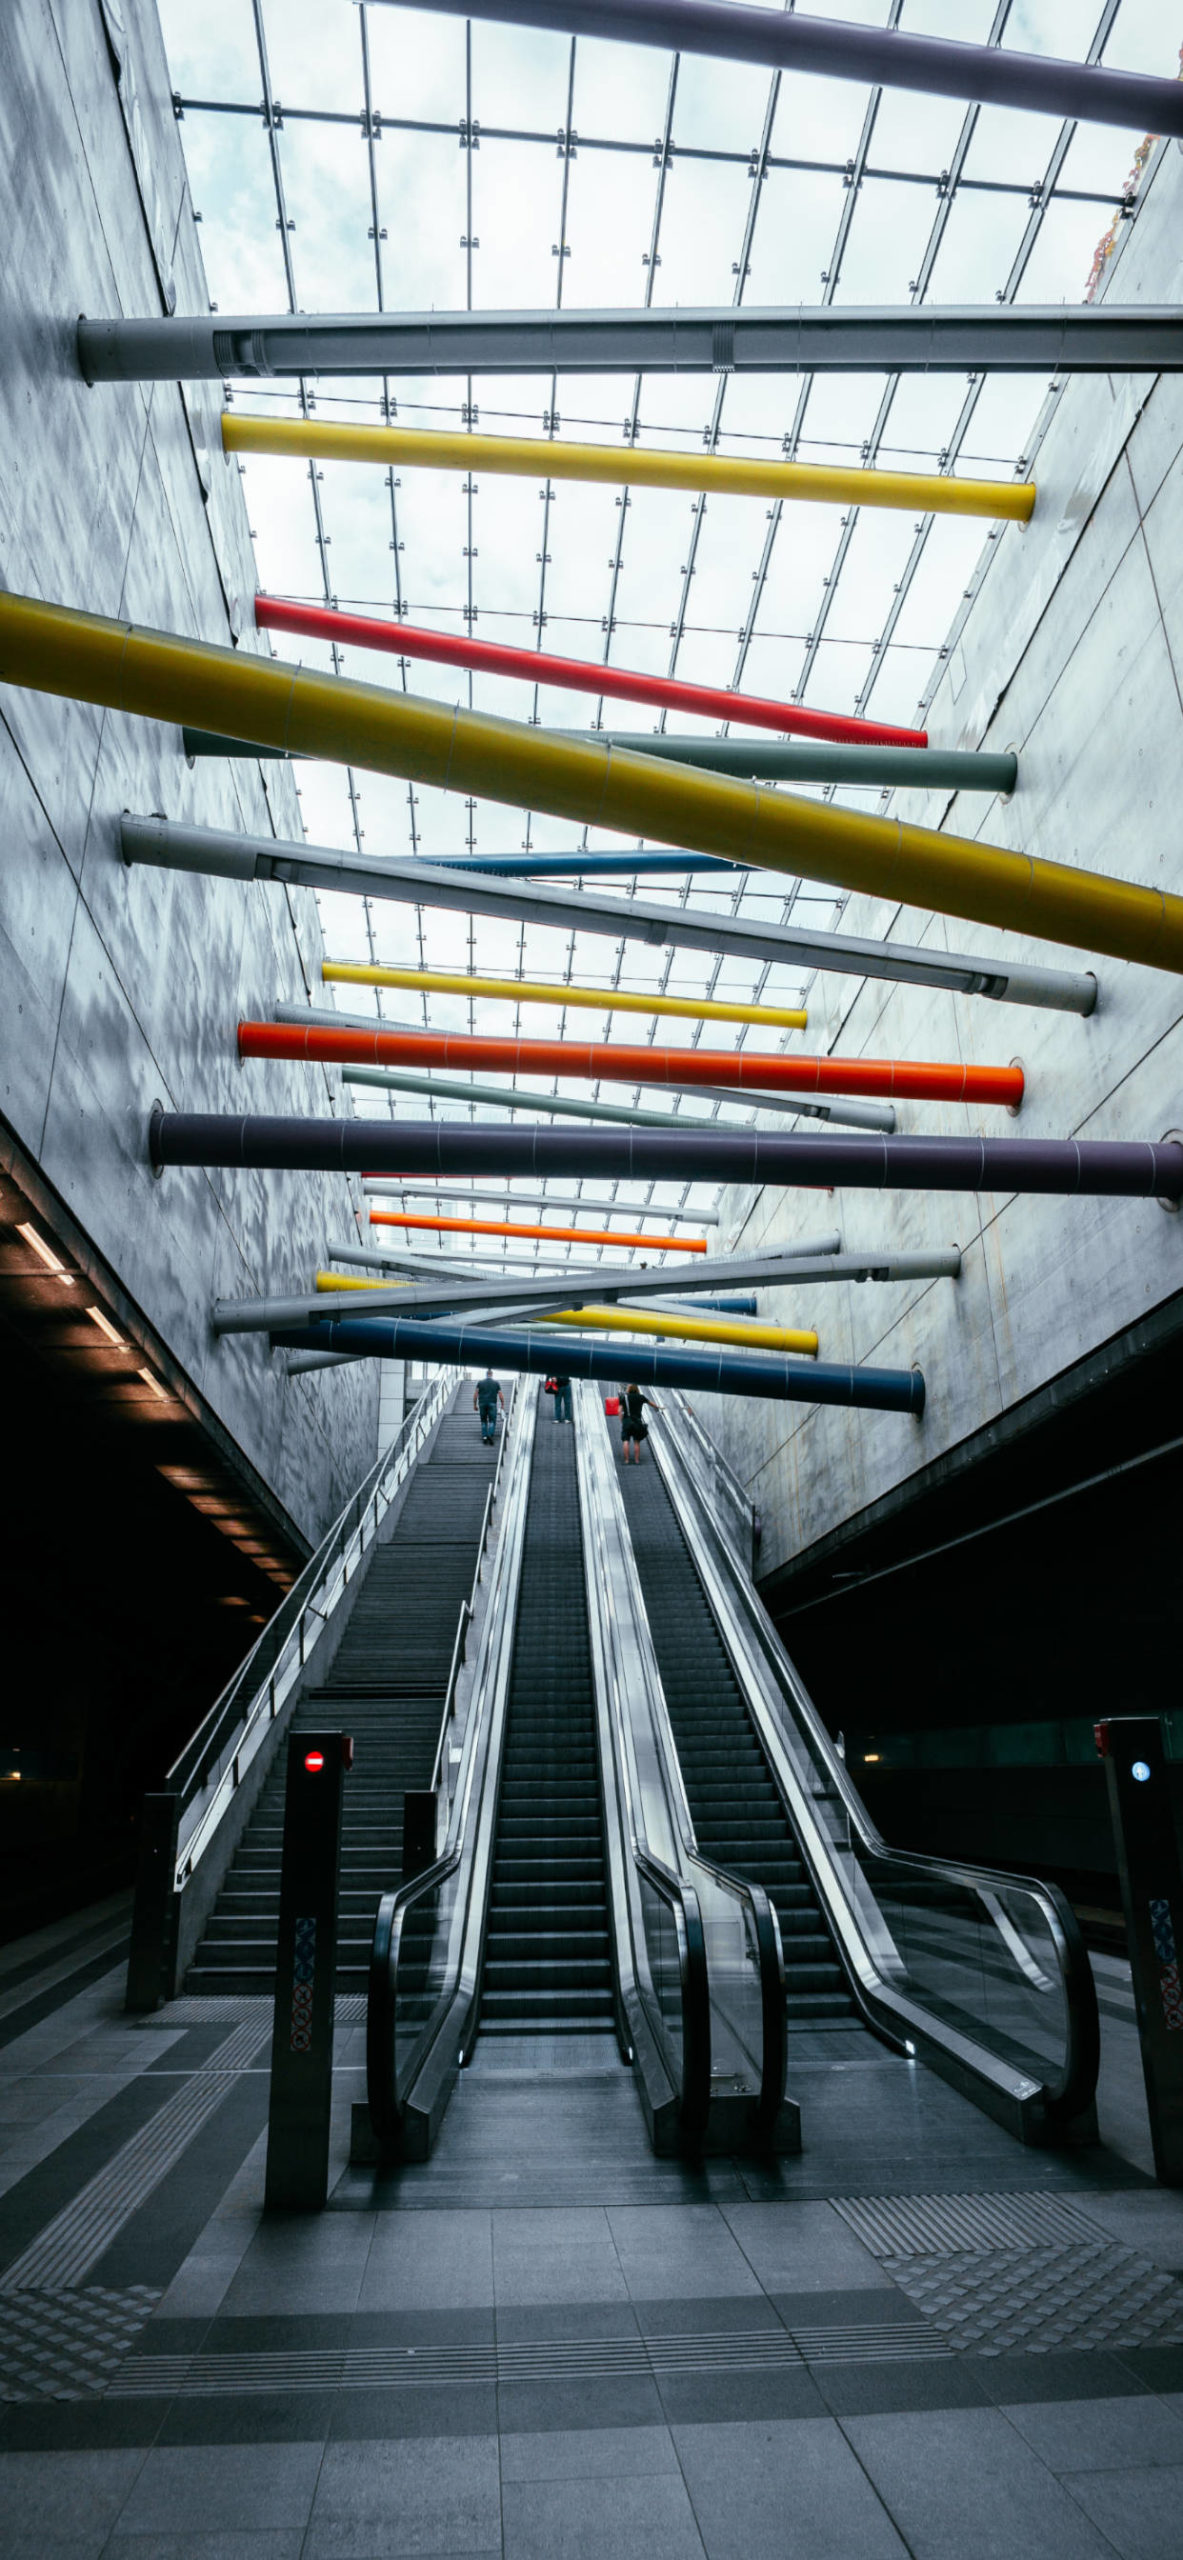 iPhone wallpapers architecture stairs tubes colors scaled Architecture